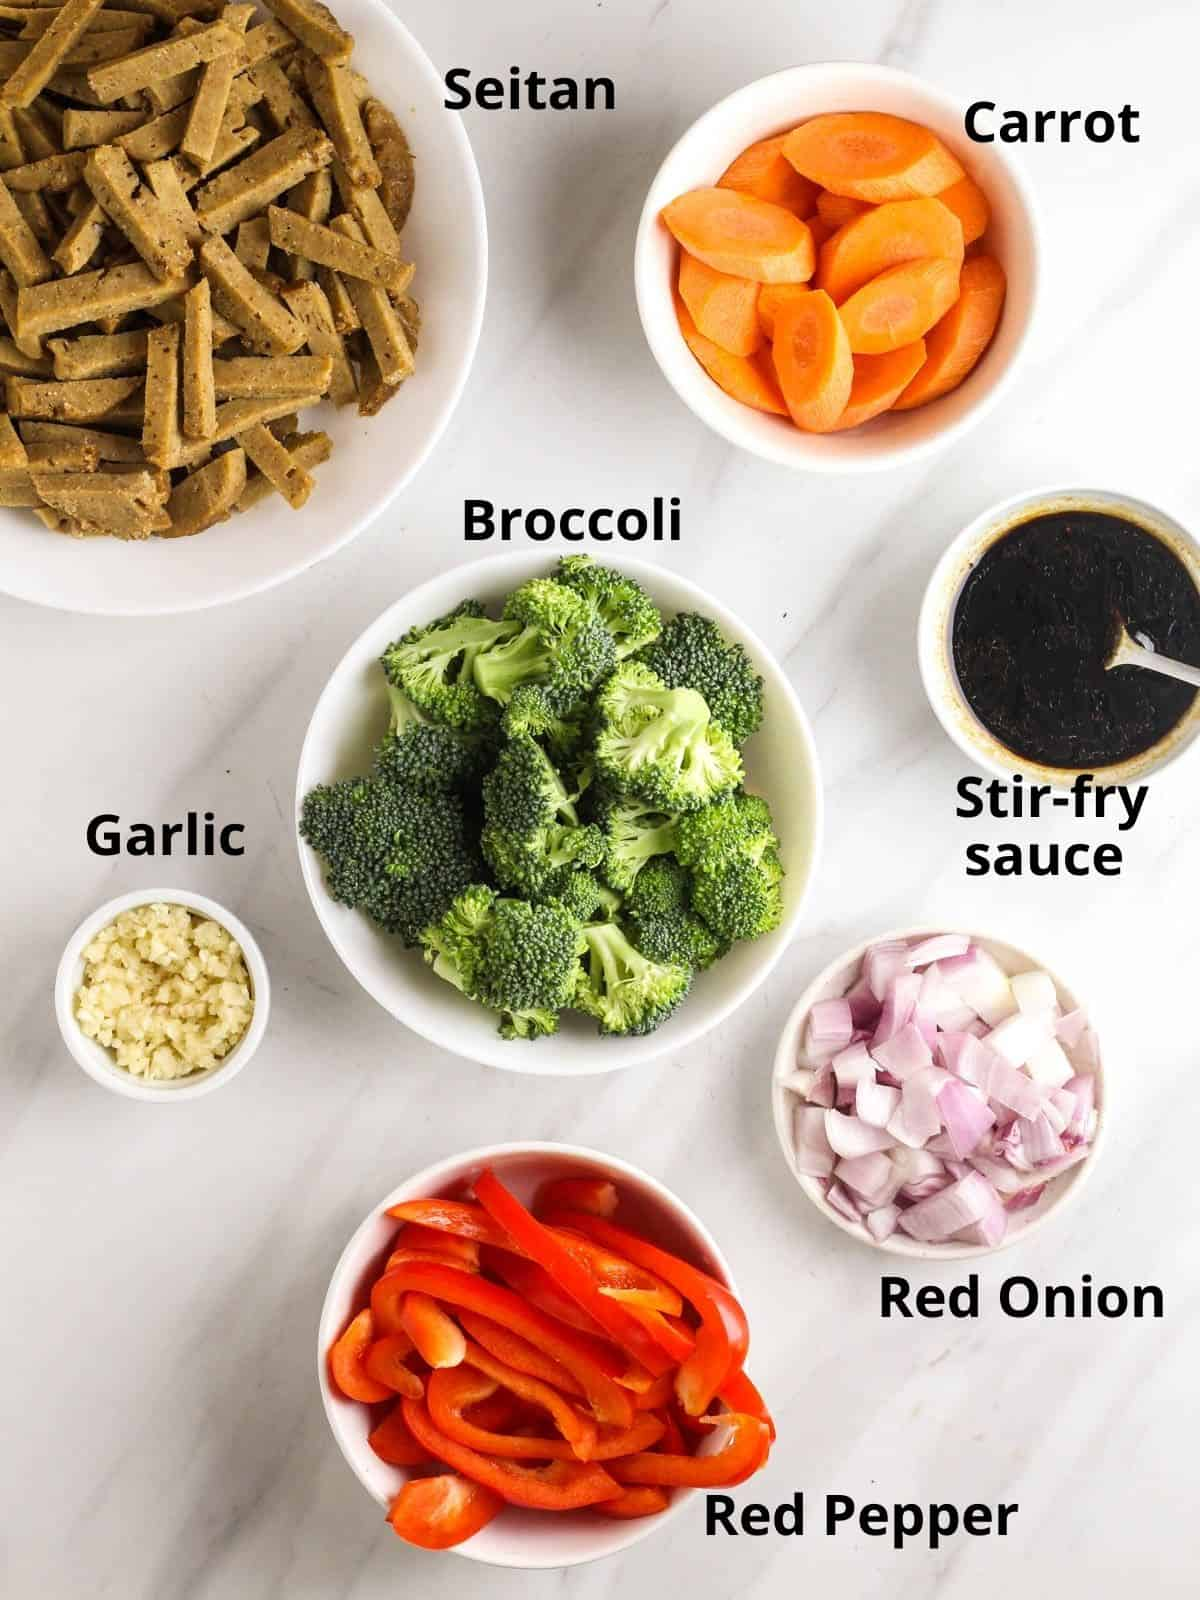 Ingredients needed to make this stir-fry.